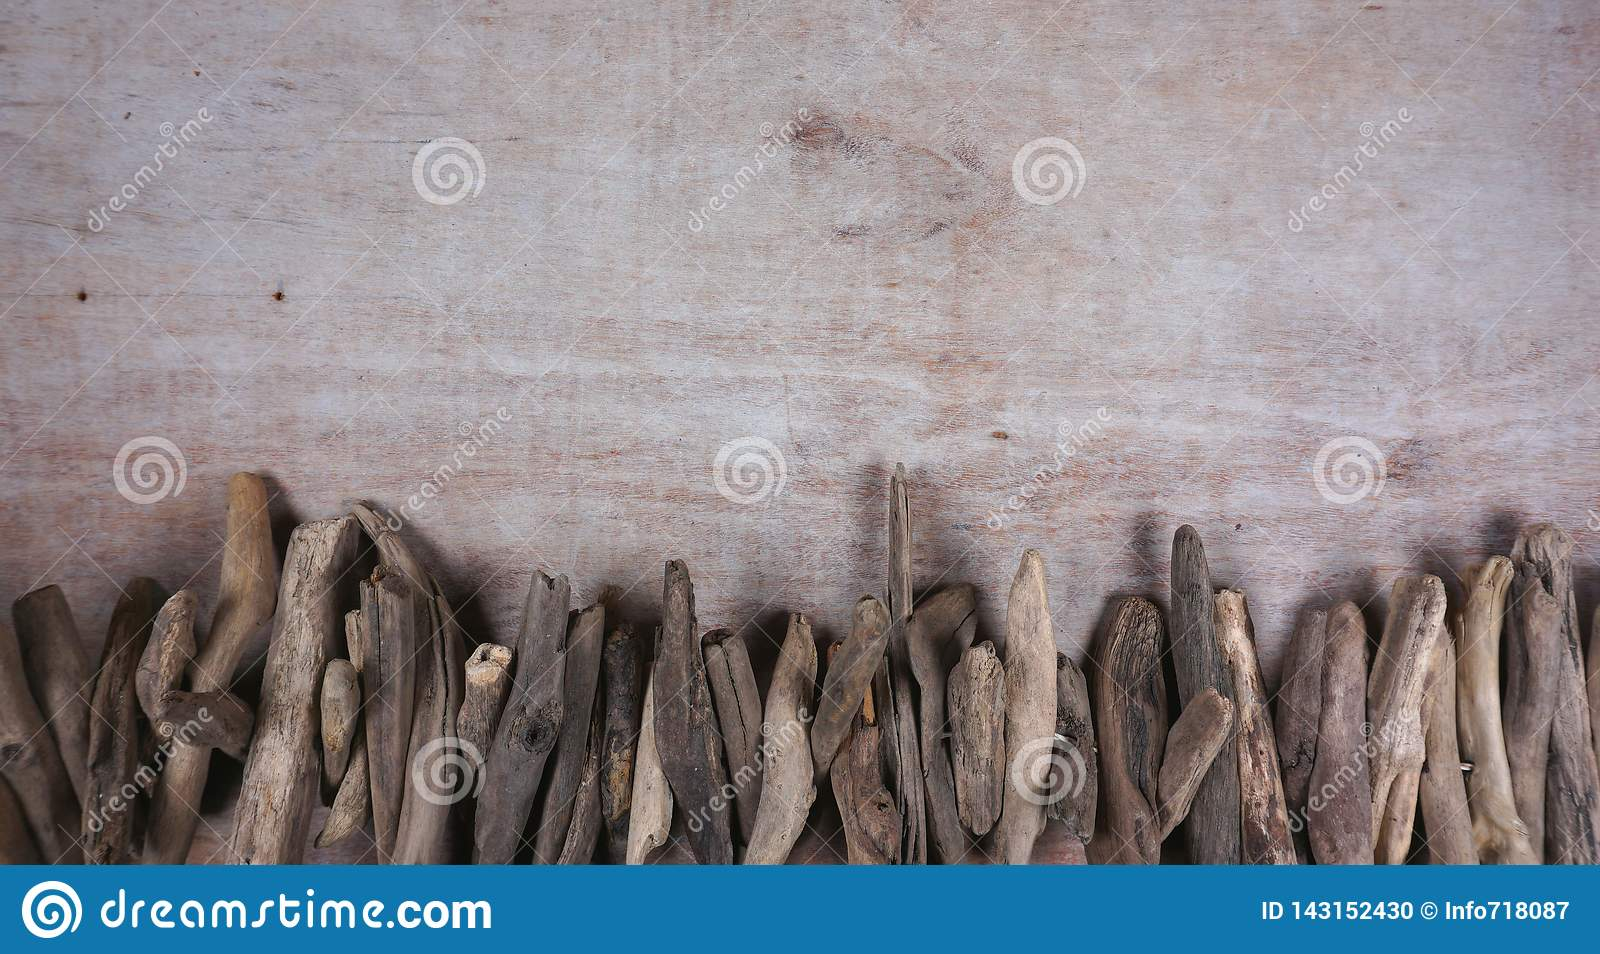 Drift wood at wooden background, decoration, maritime items, sea objects with copy space for your own text